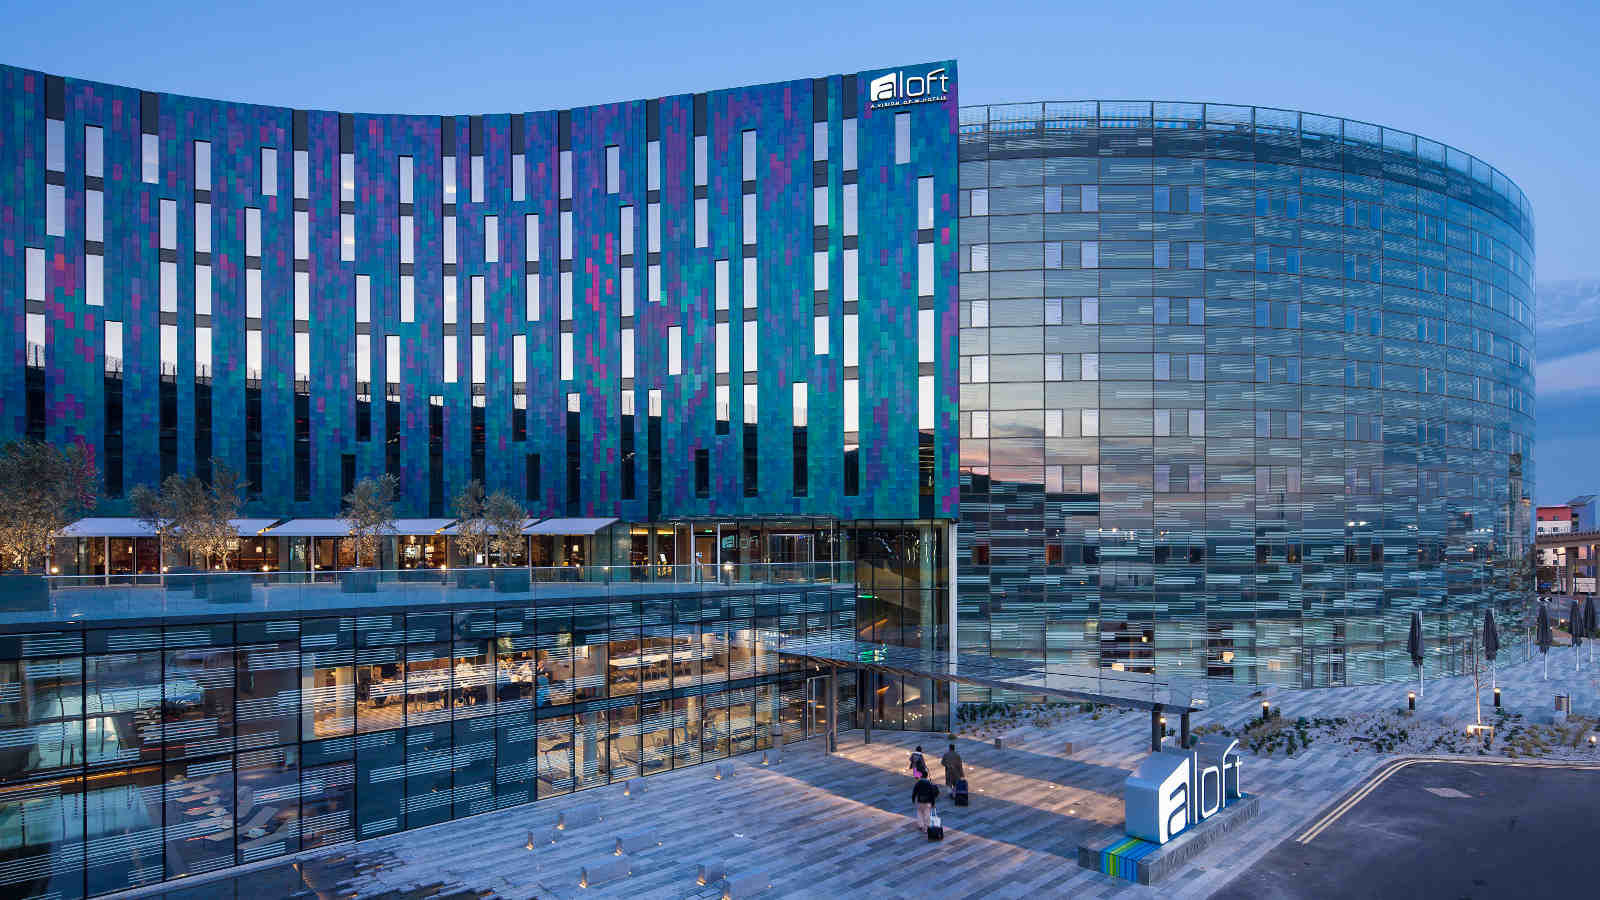 Aloft hotel near ExCel London